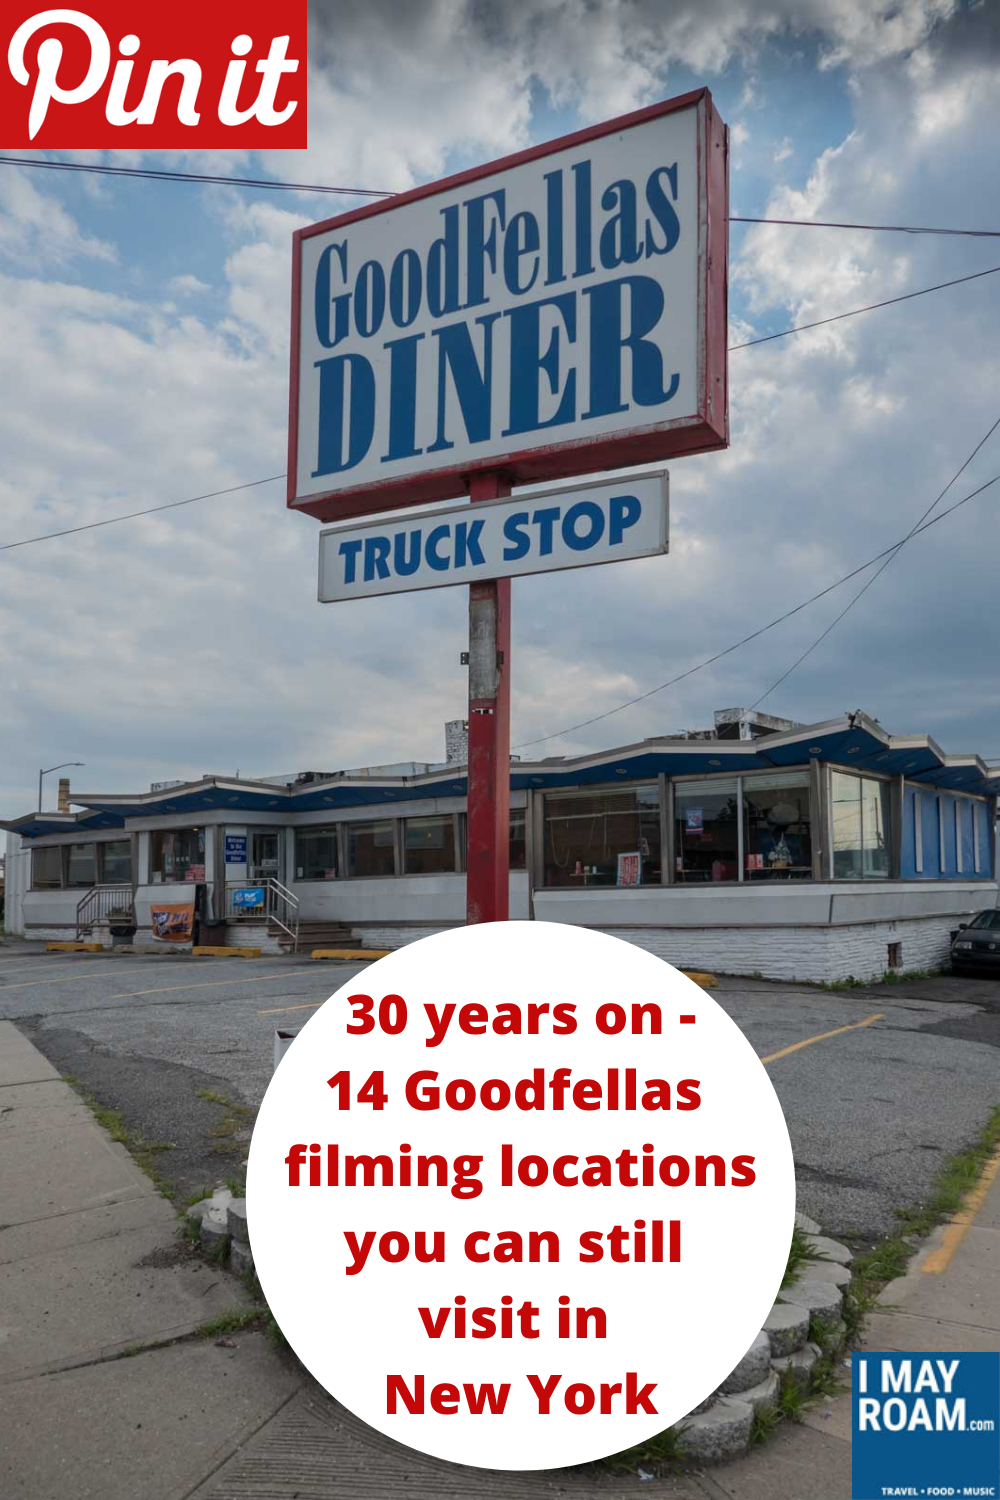 Pinterest 30 years on - 14 Goodfellas filming locations you can still visit in New York